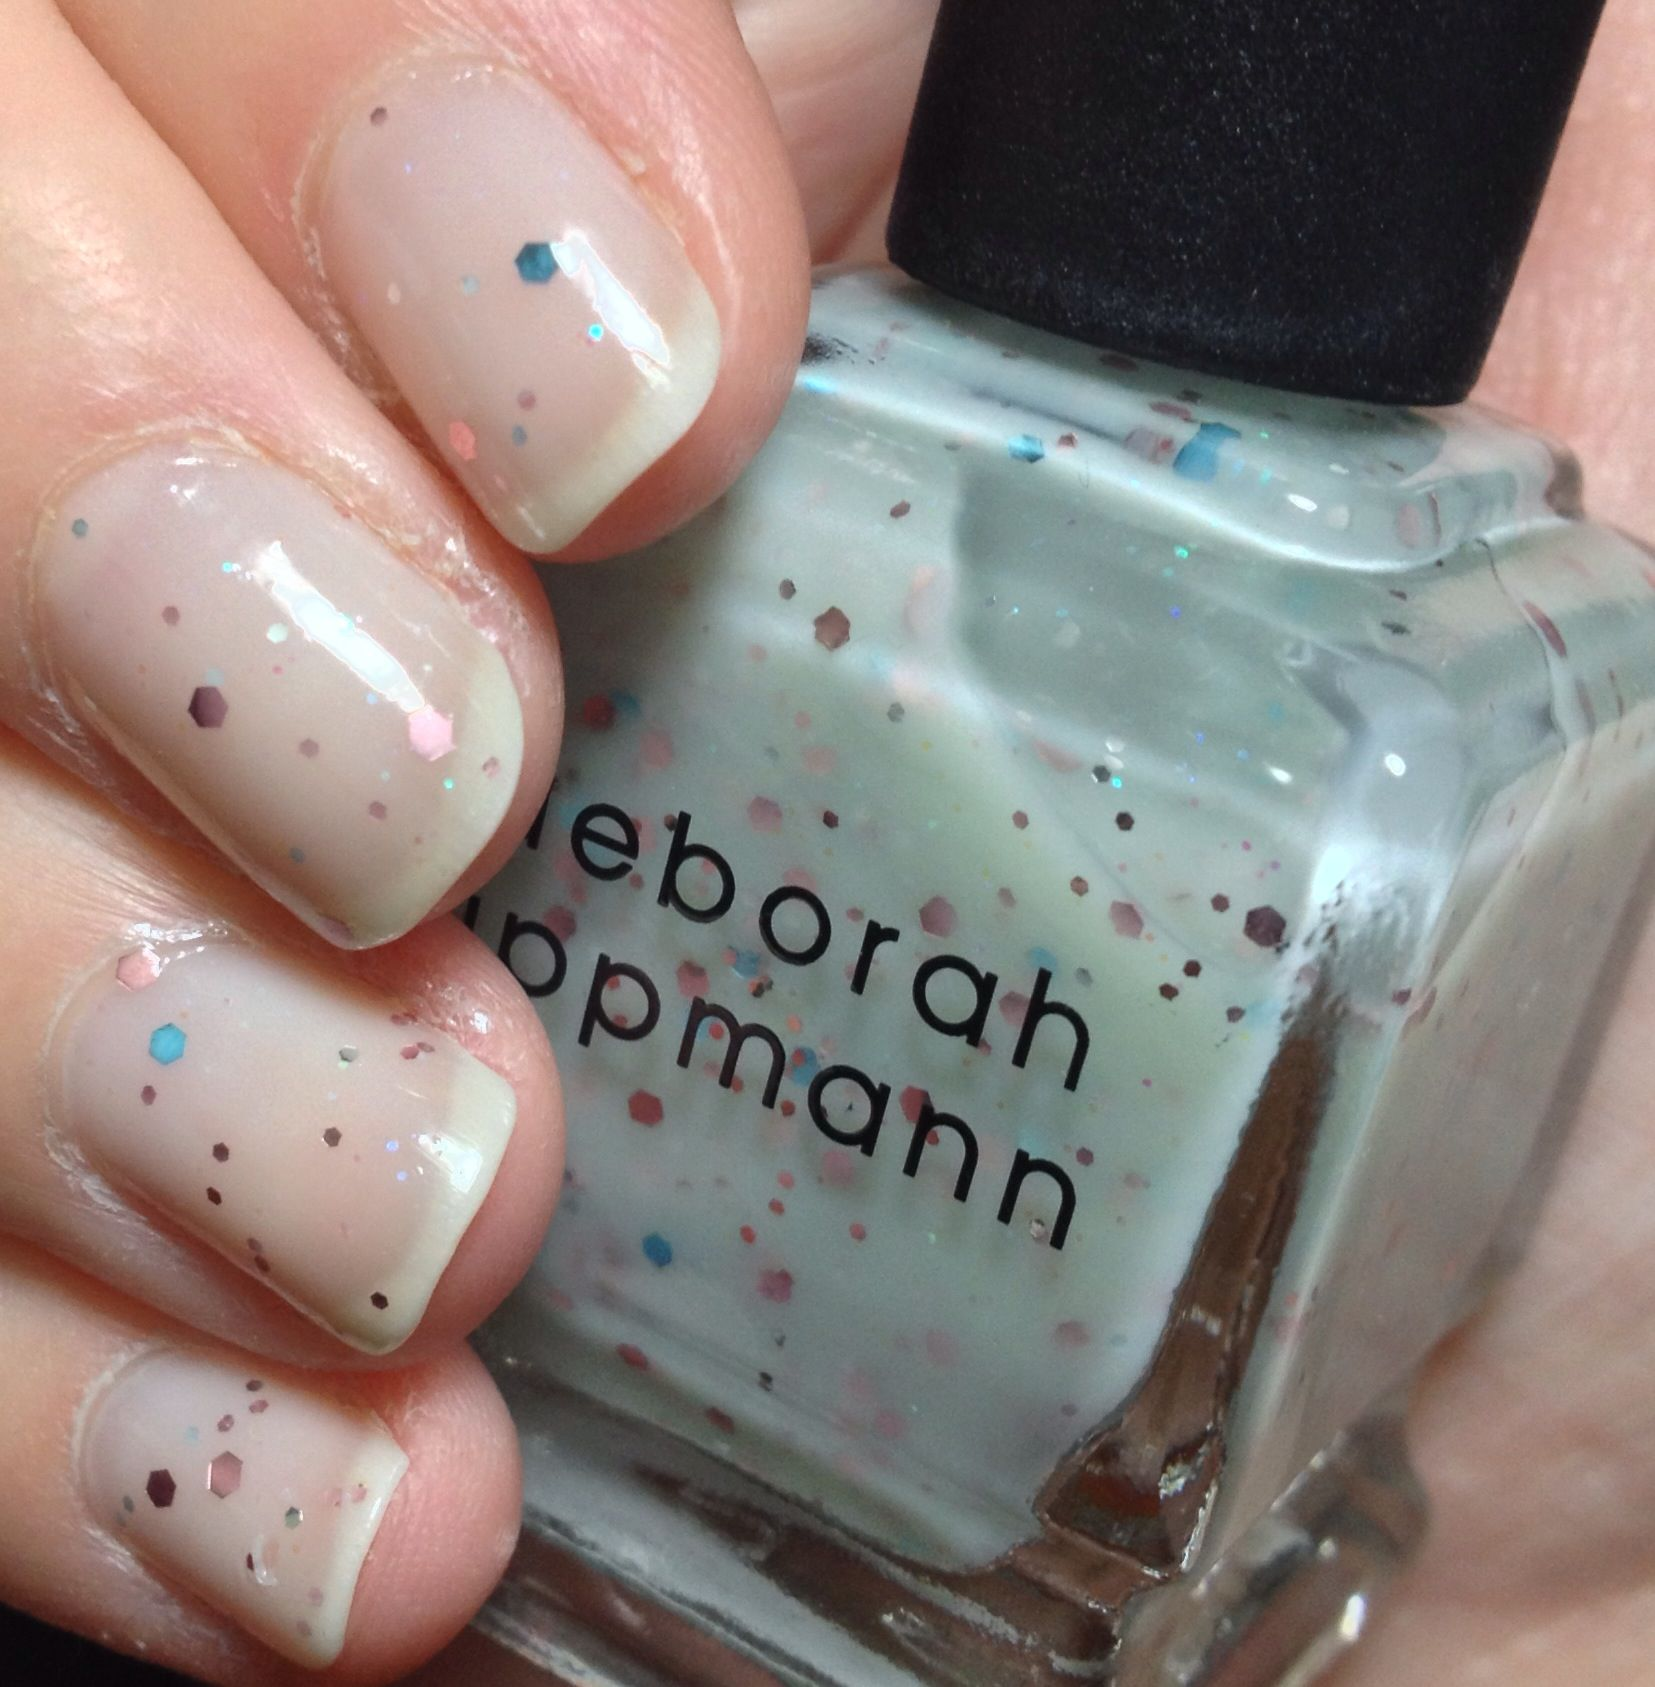 notd featuring @Deborah lippmann in #GlitterInTheAir - 3 coats ...